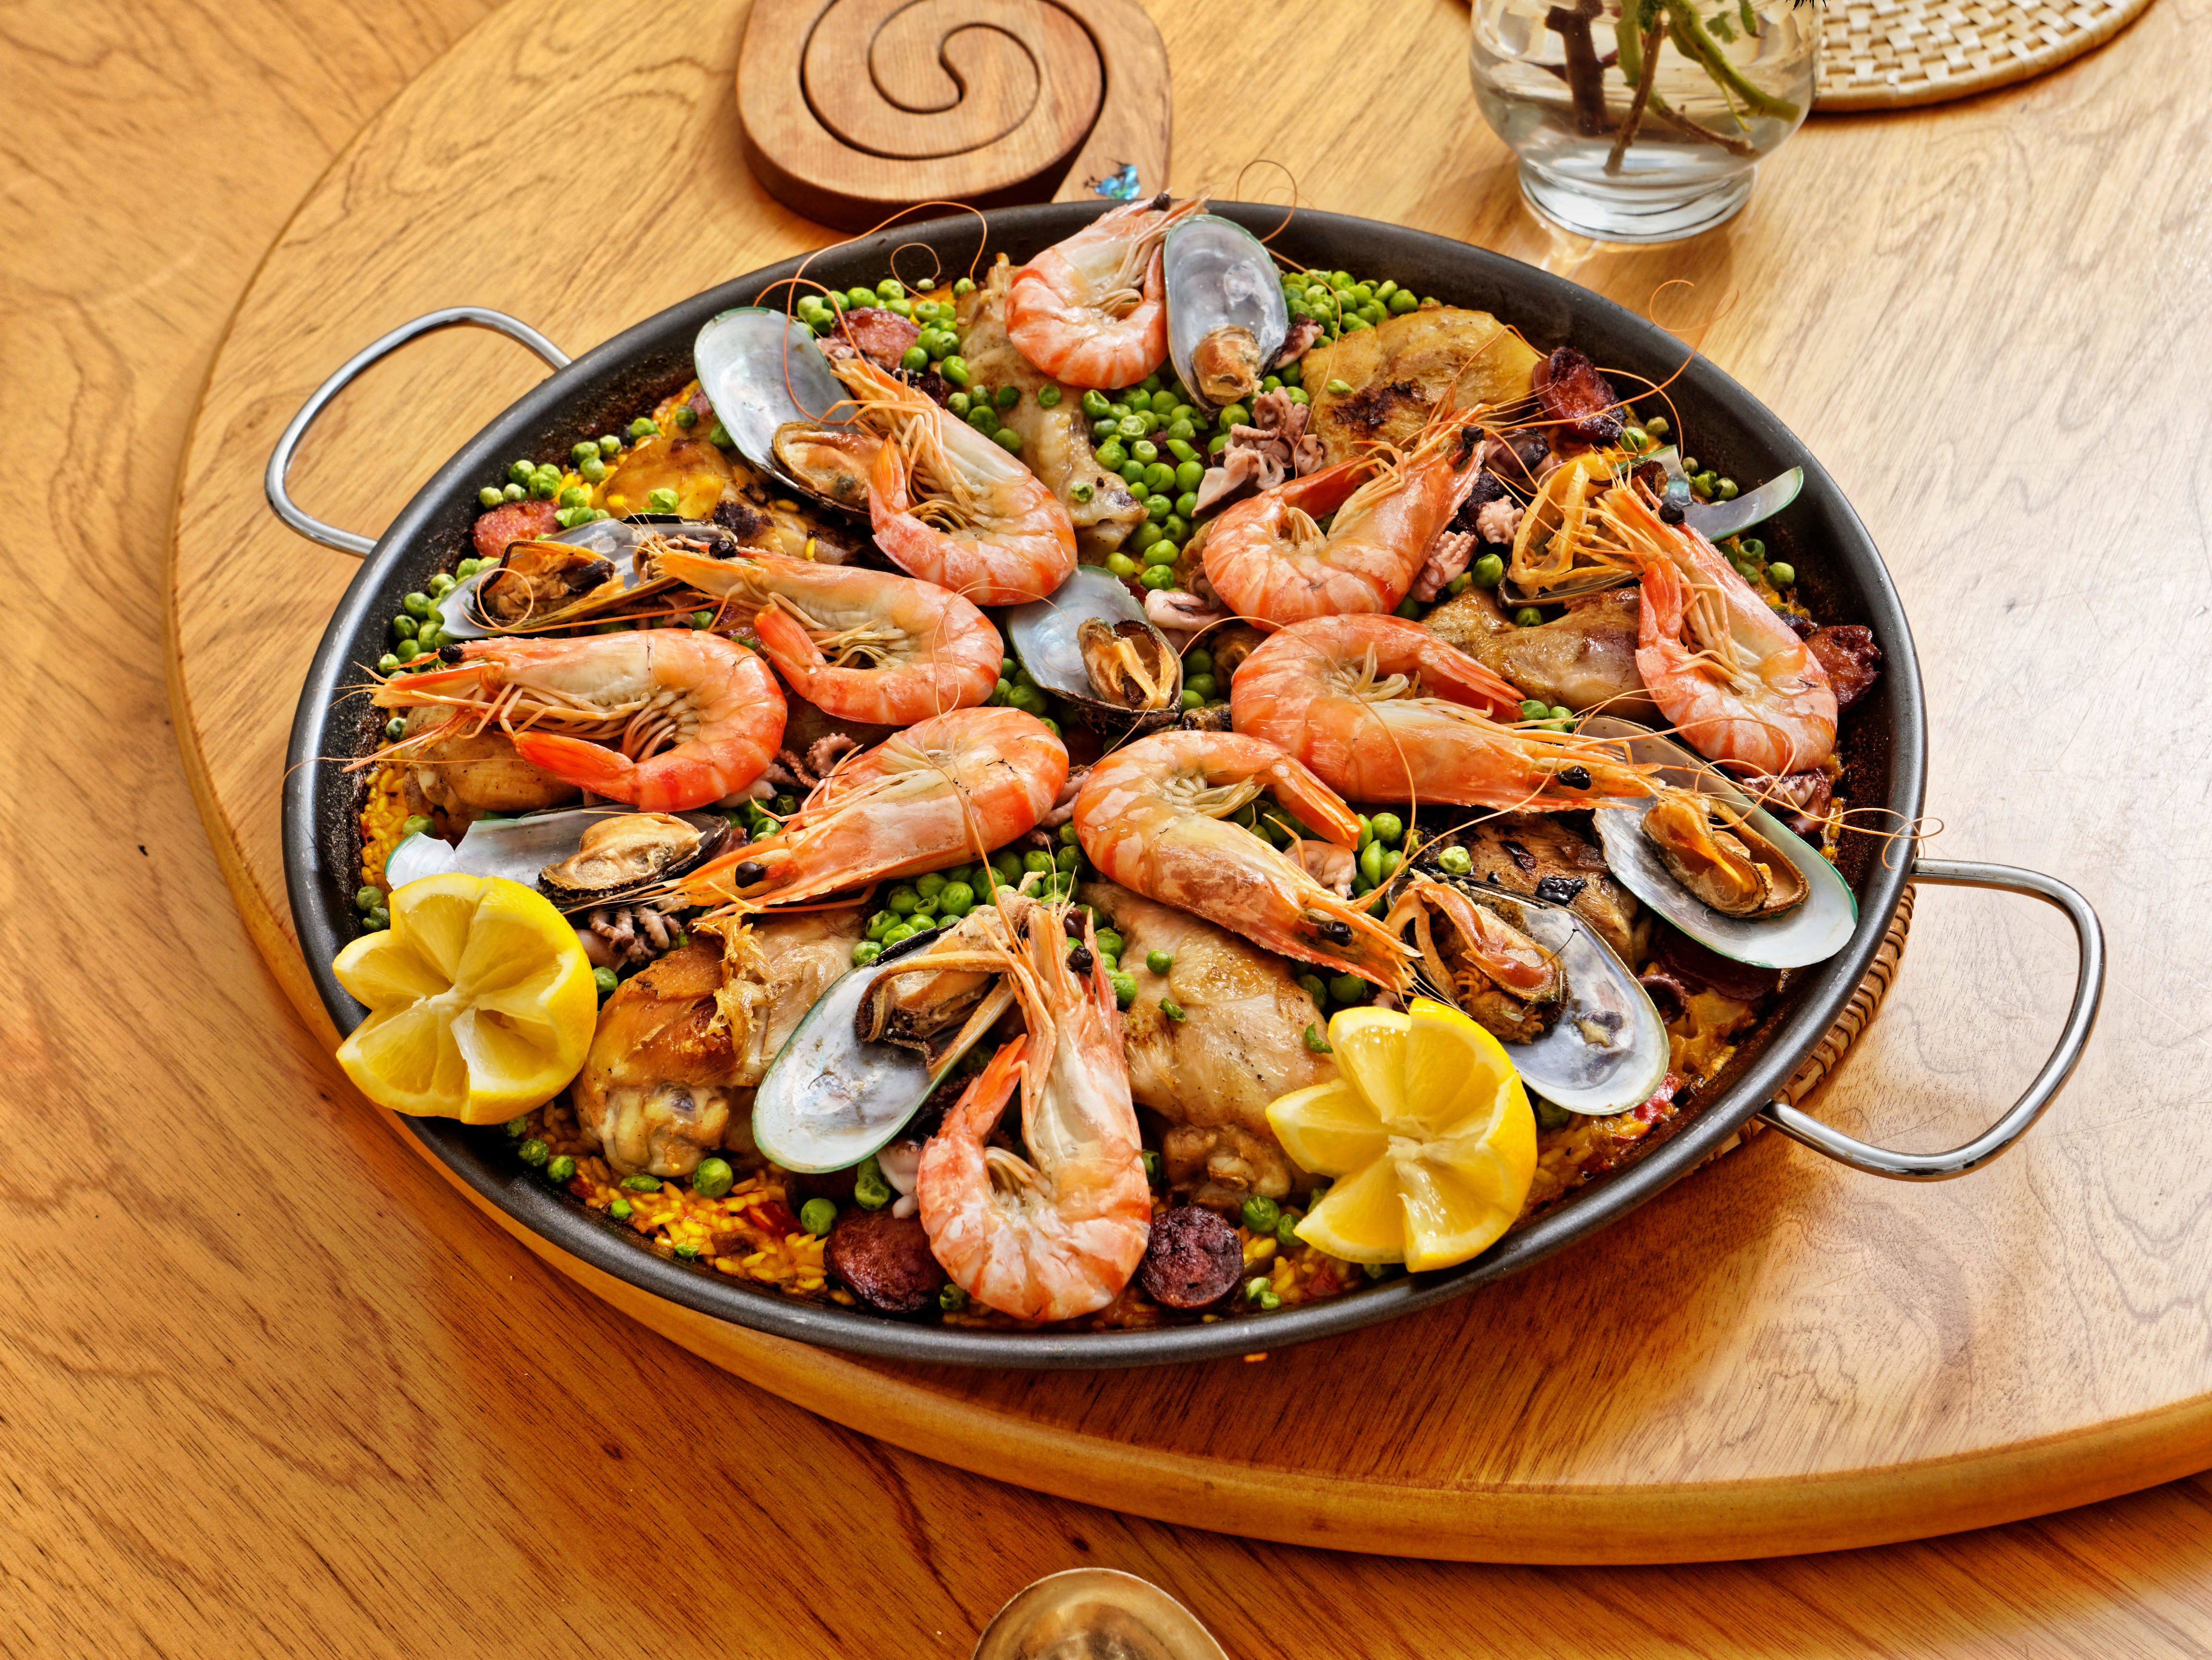 This should be Paella-4.jpeg.  Is it missing?